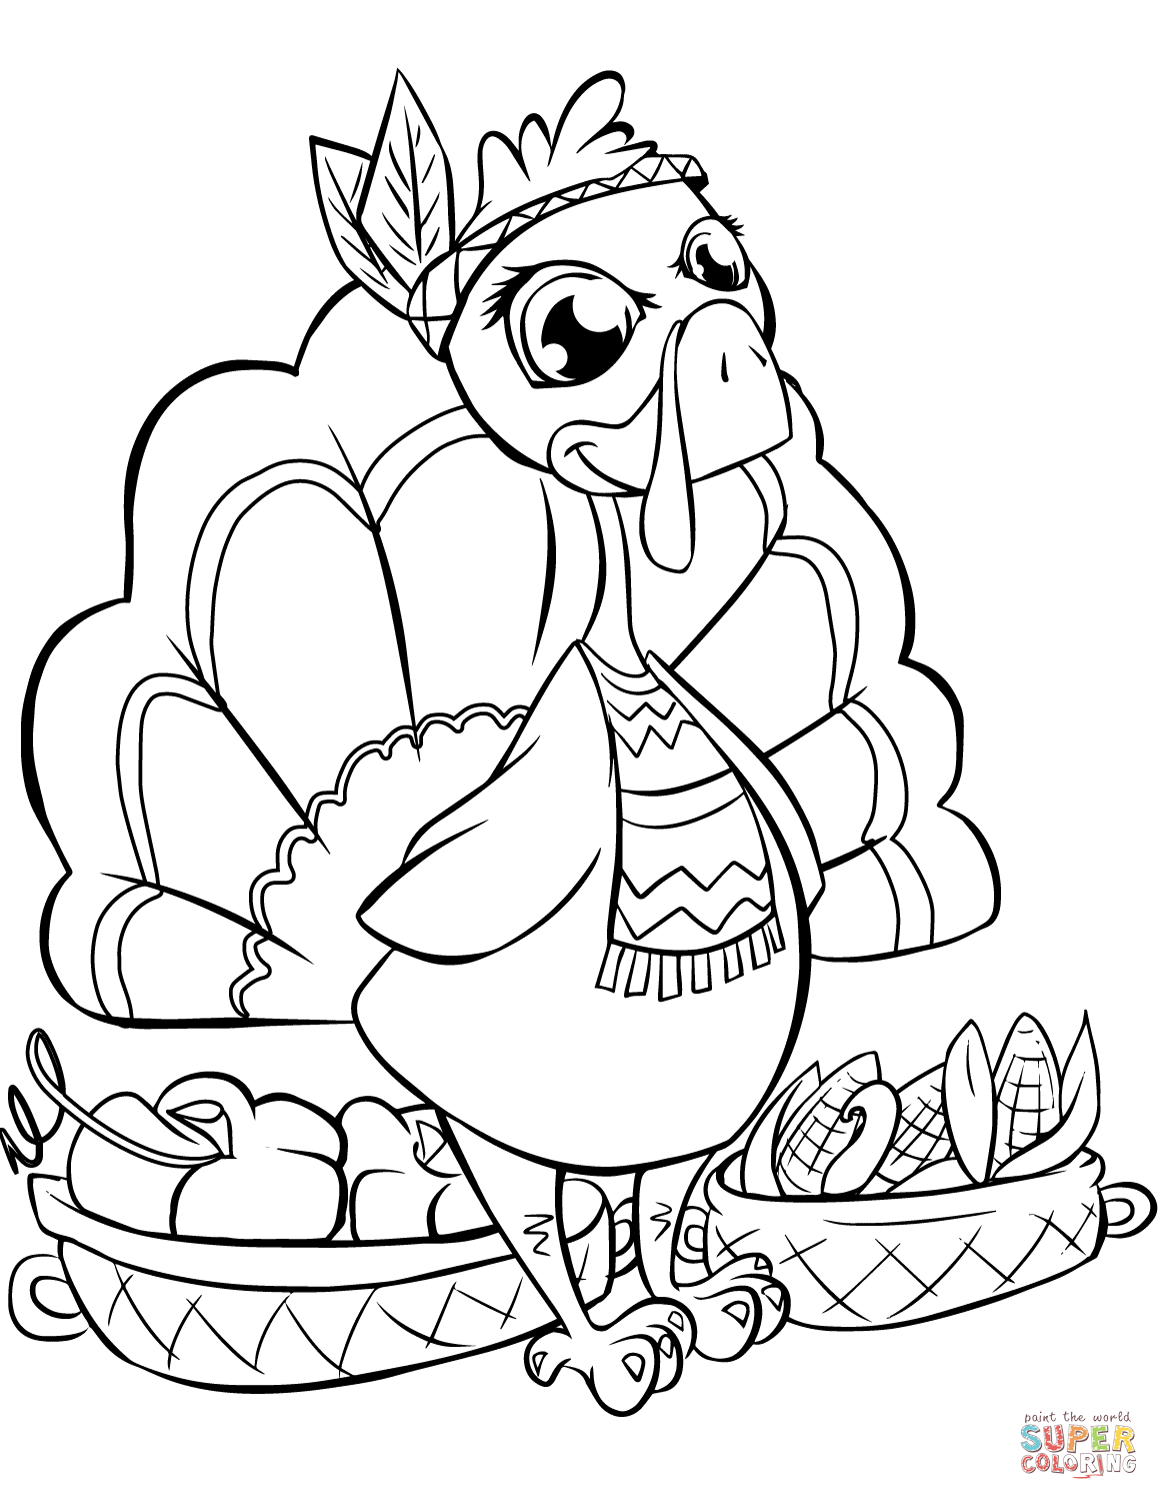 coloring cute turkey clipart cute turkeys to color neo coloring turkey cute clipart coloring